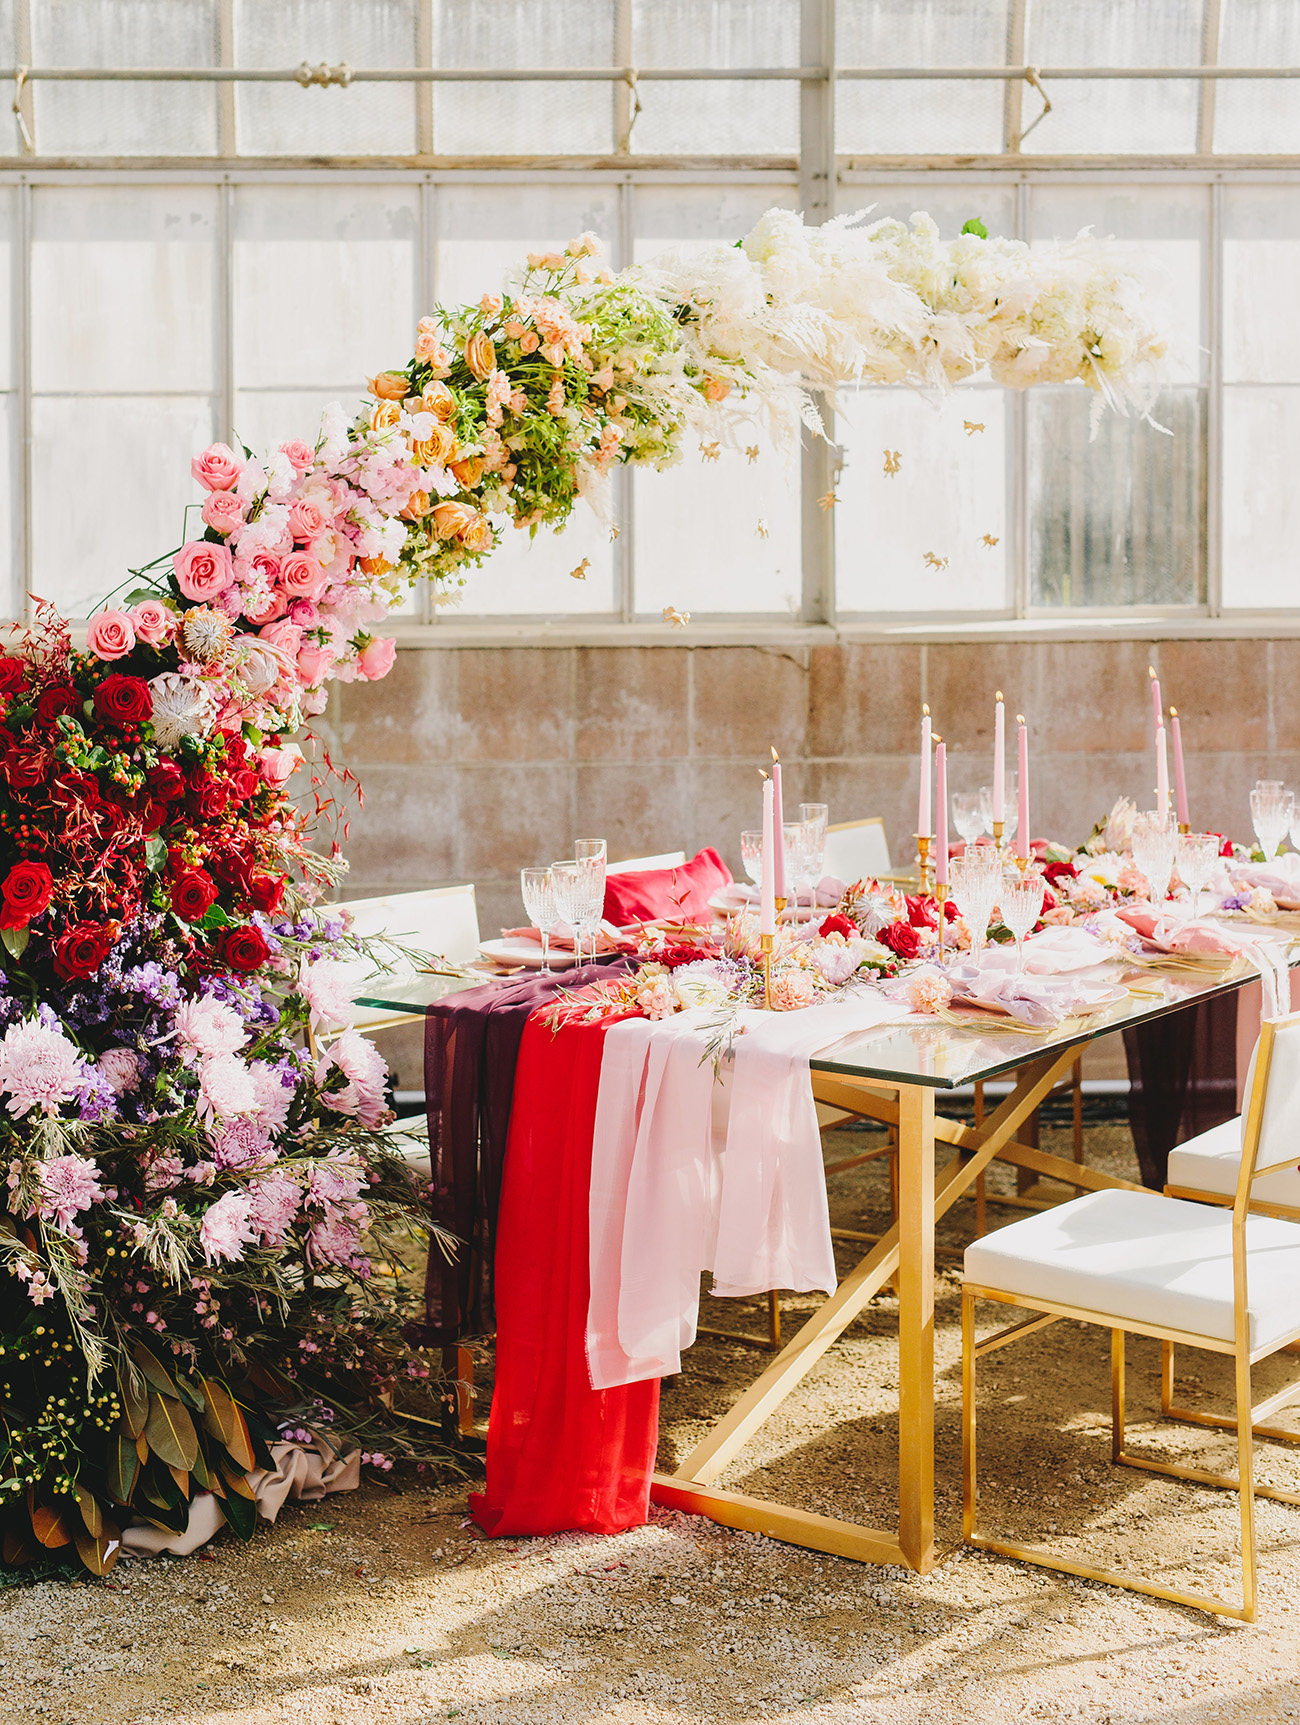 rainbow florals over table